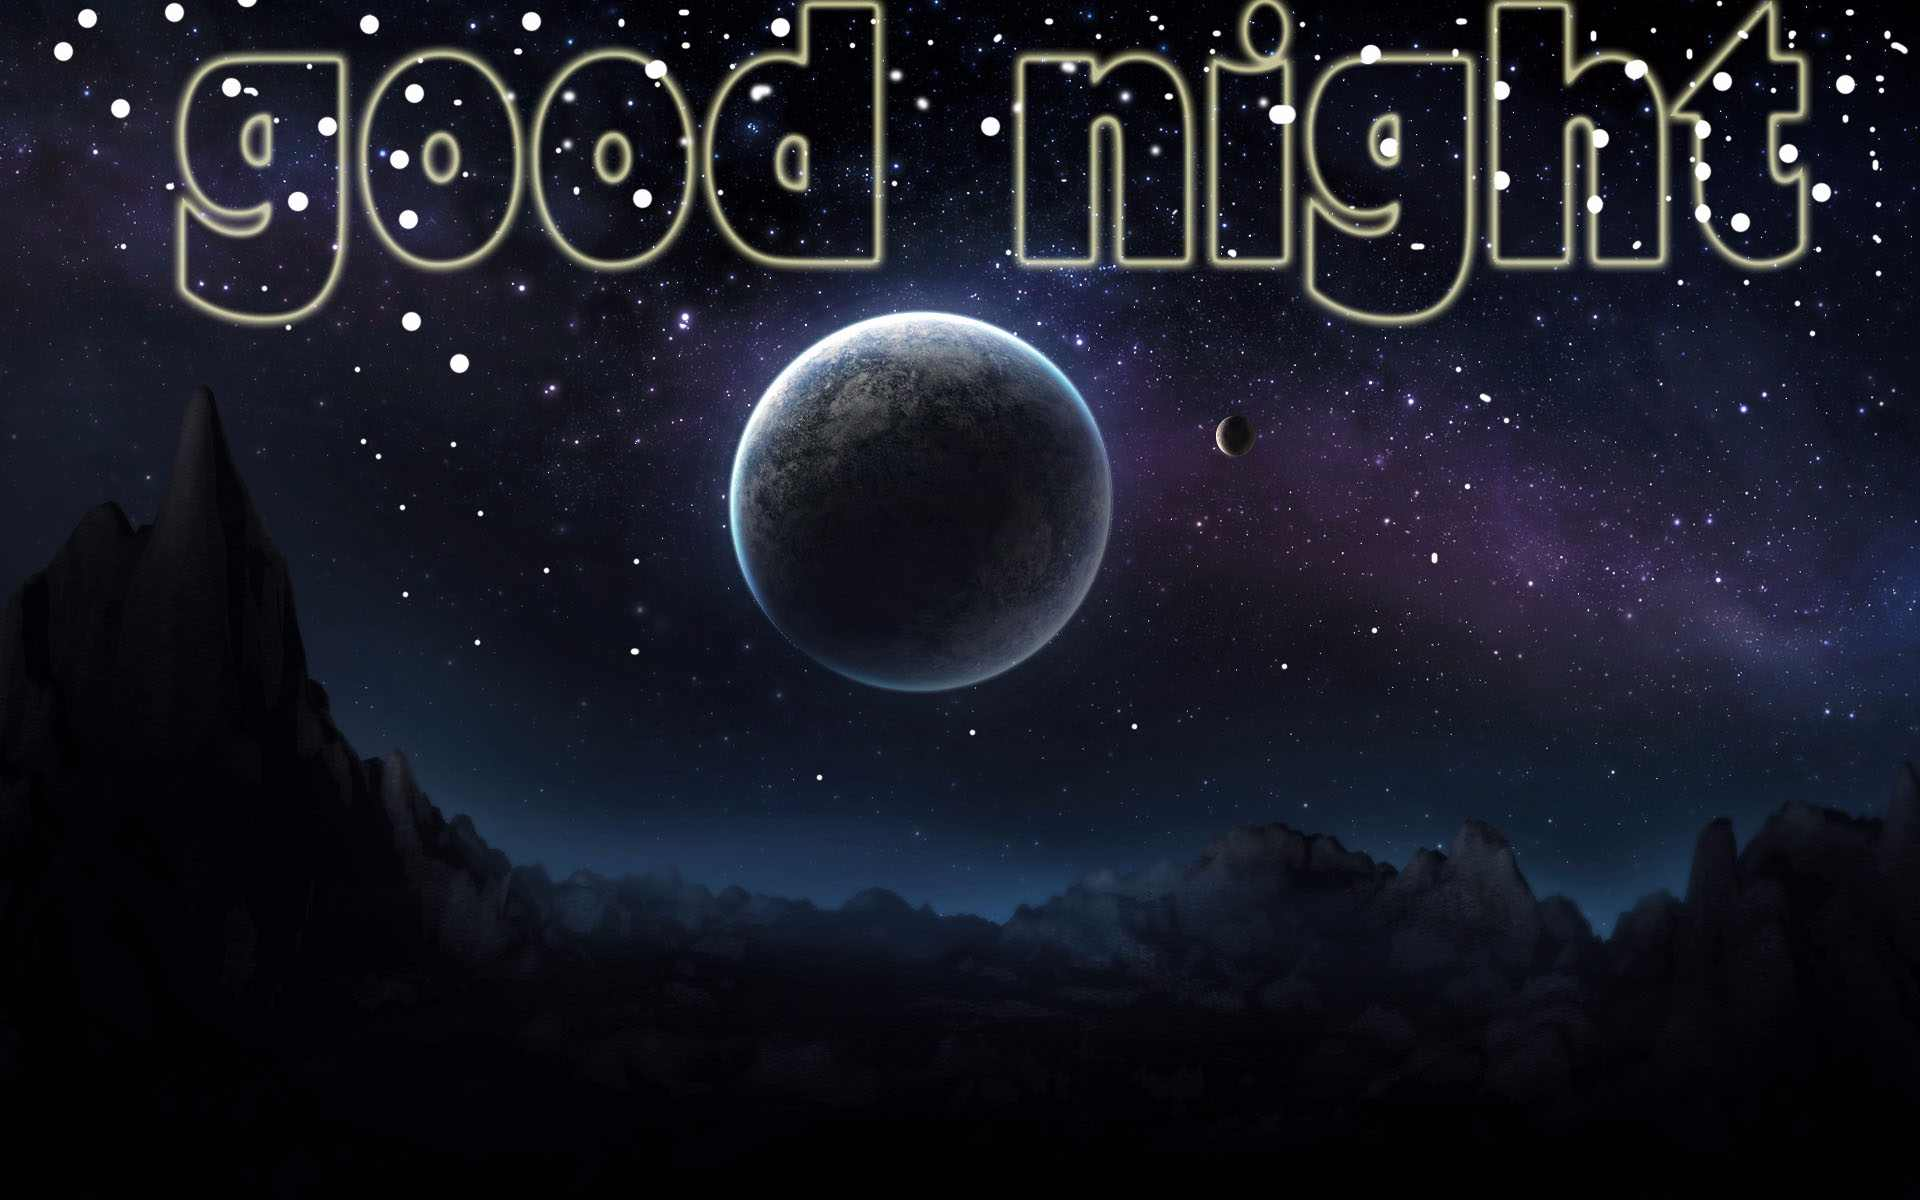 Good Night Wallpapers 2016 Mobil Wallpaper Cave